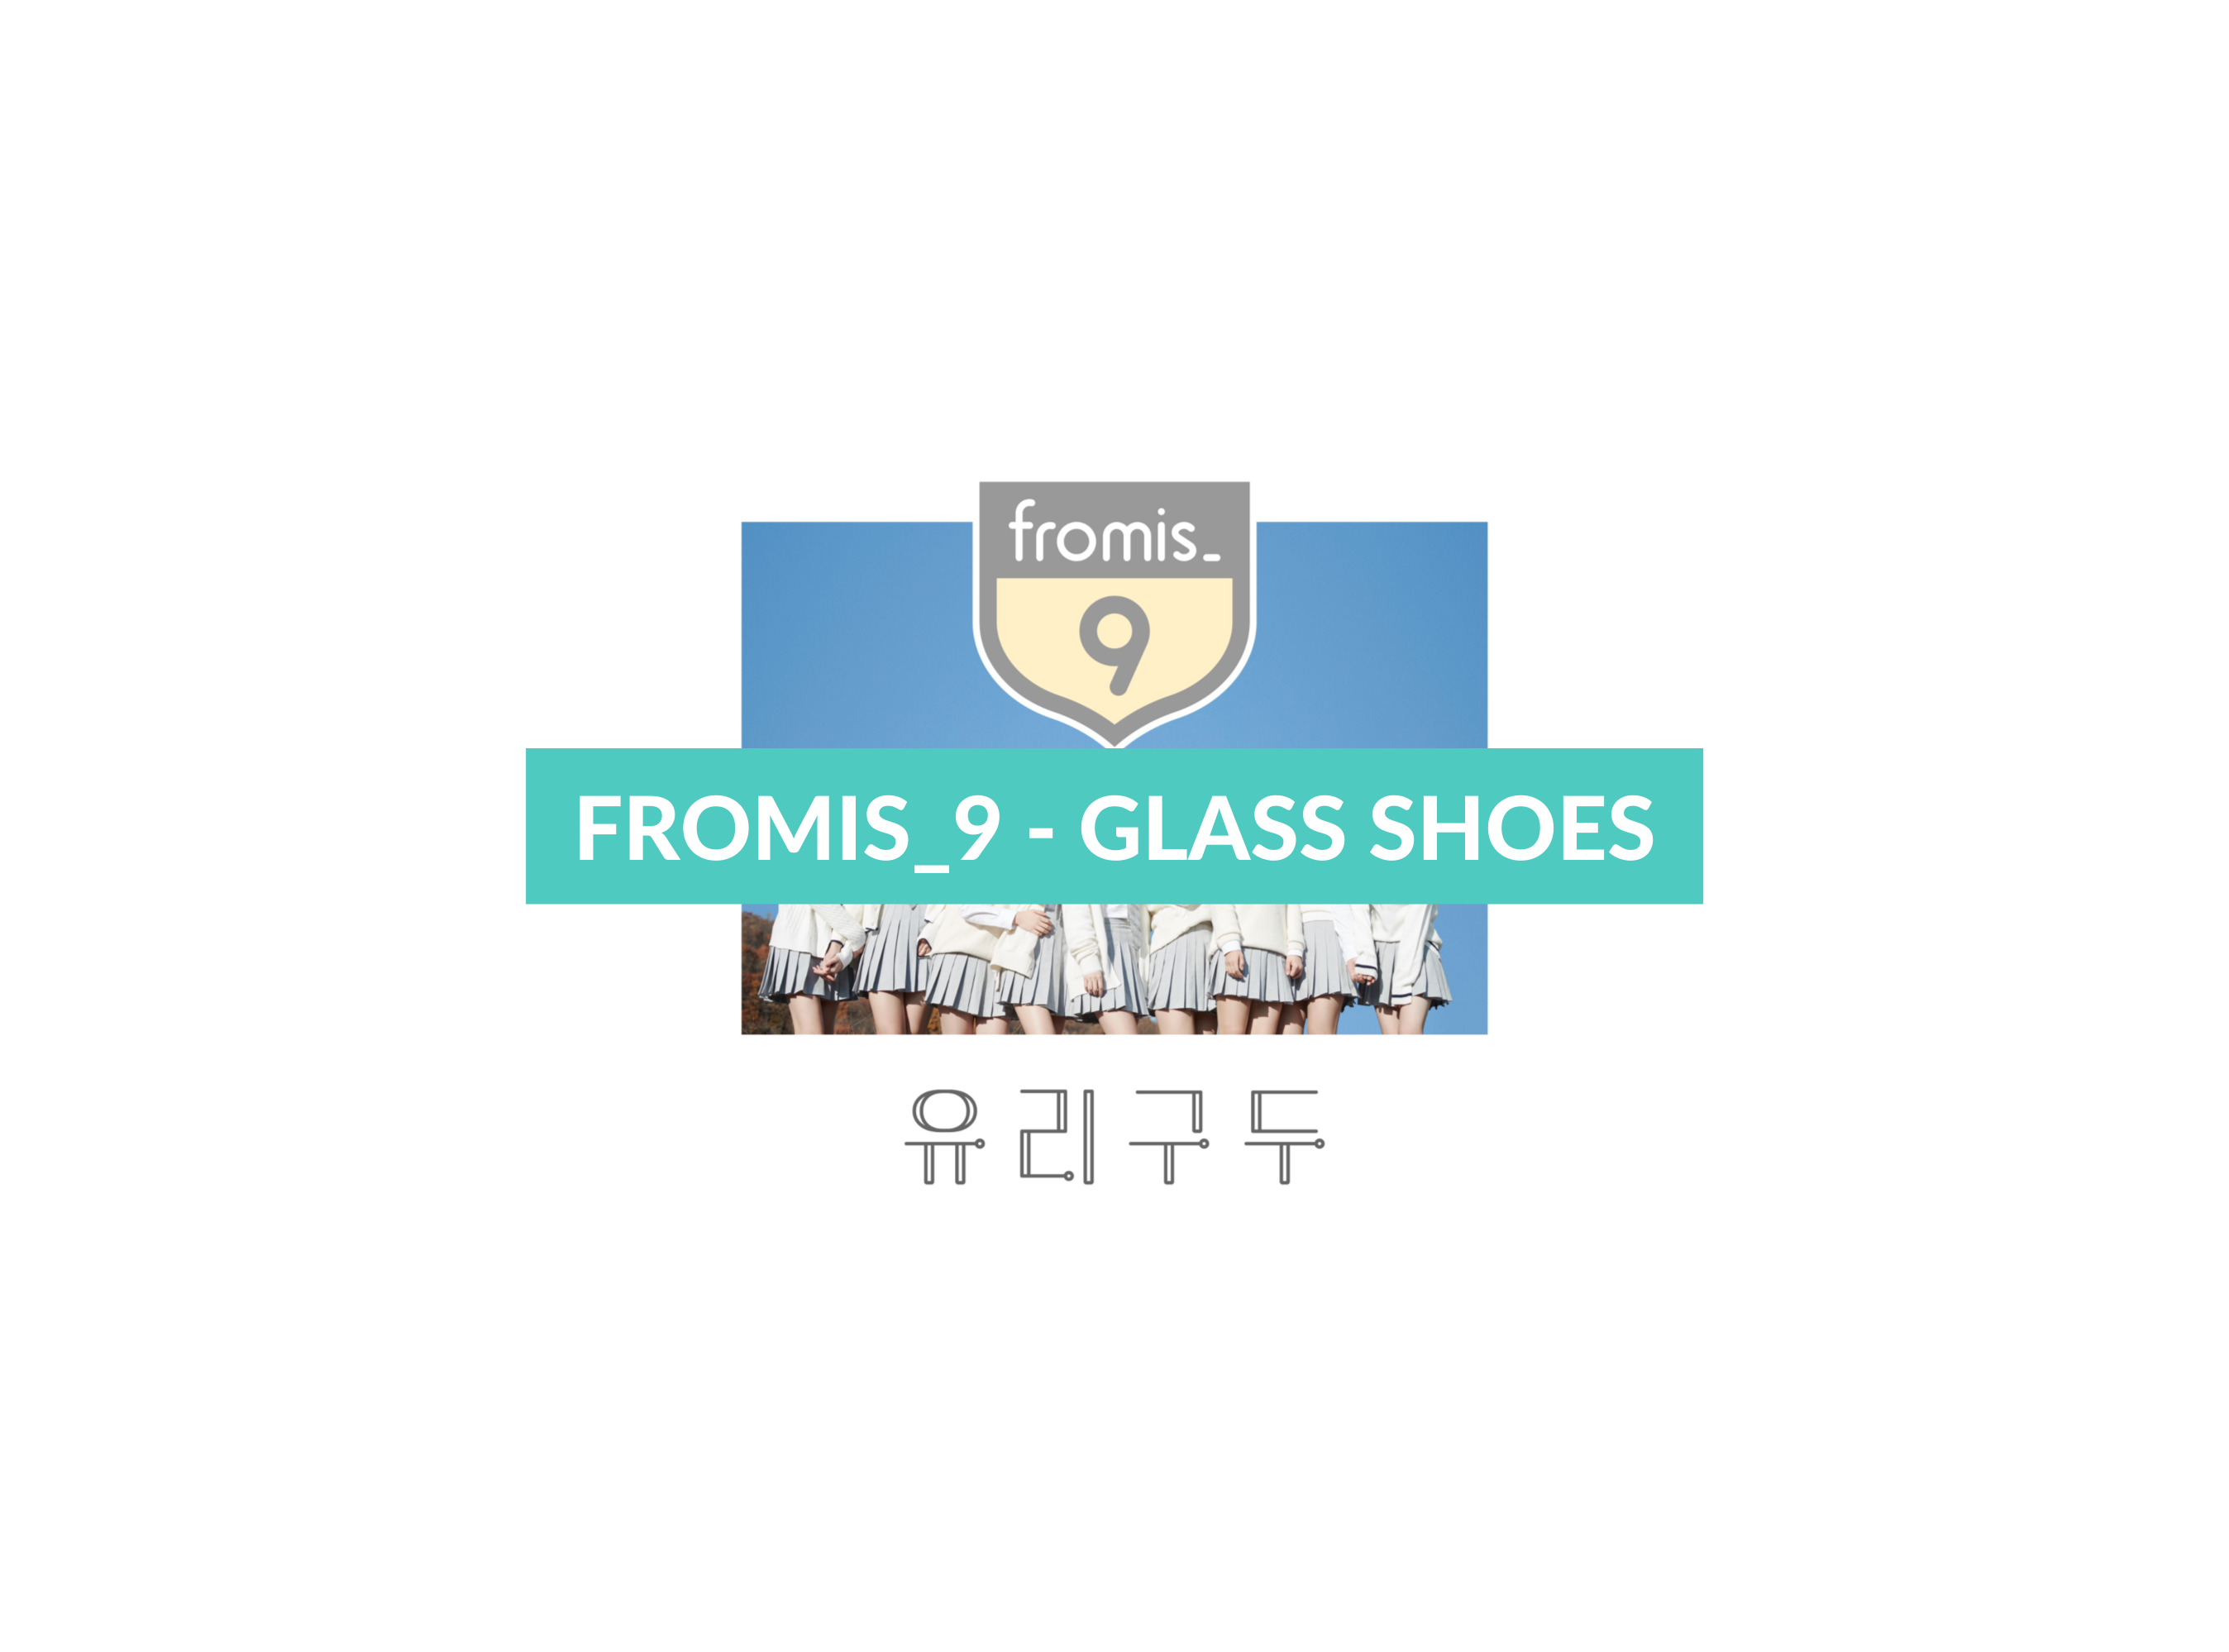 fromis_9 - Glass Shoes